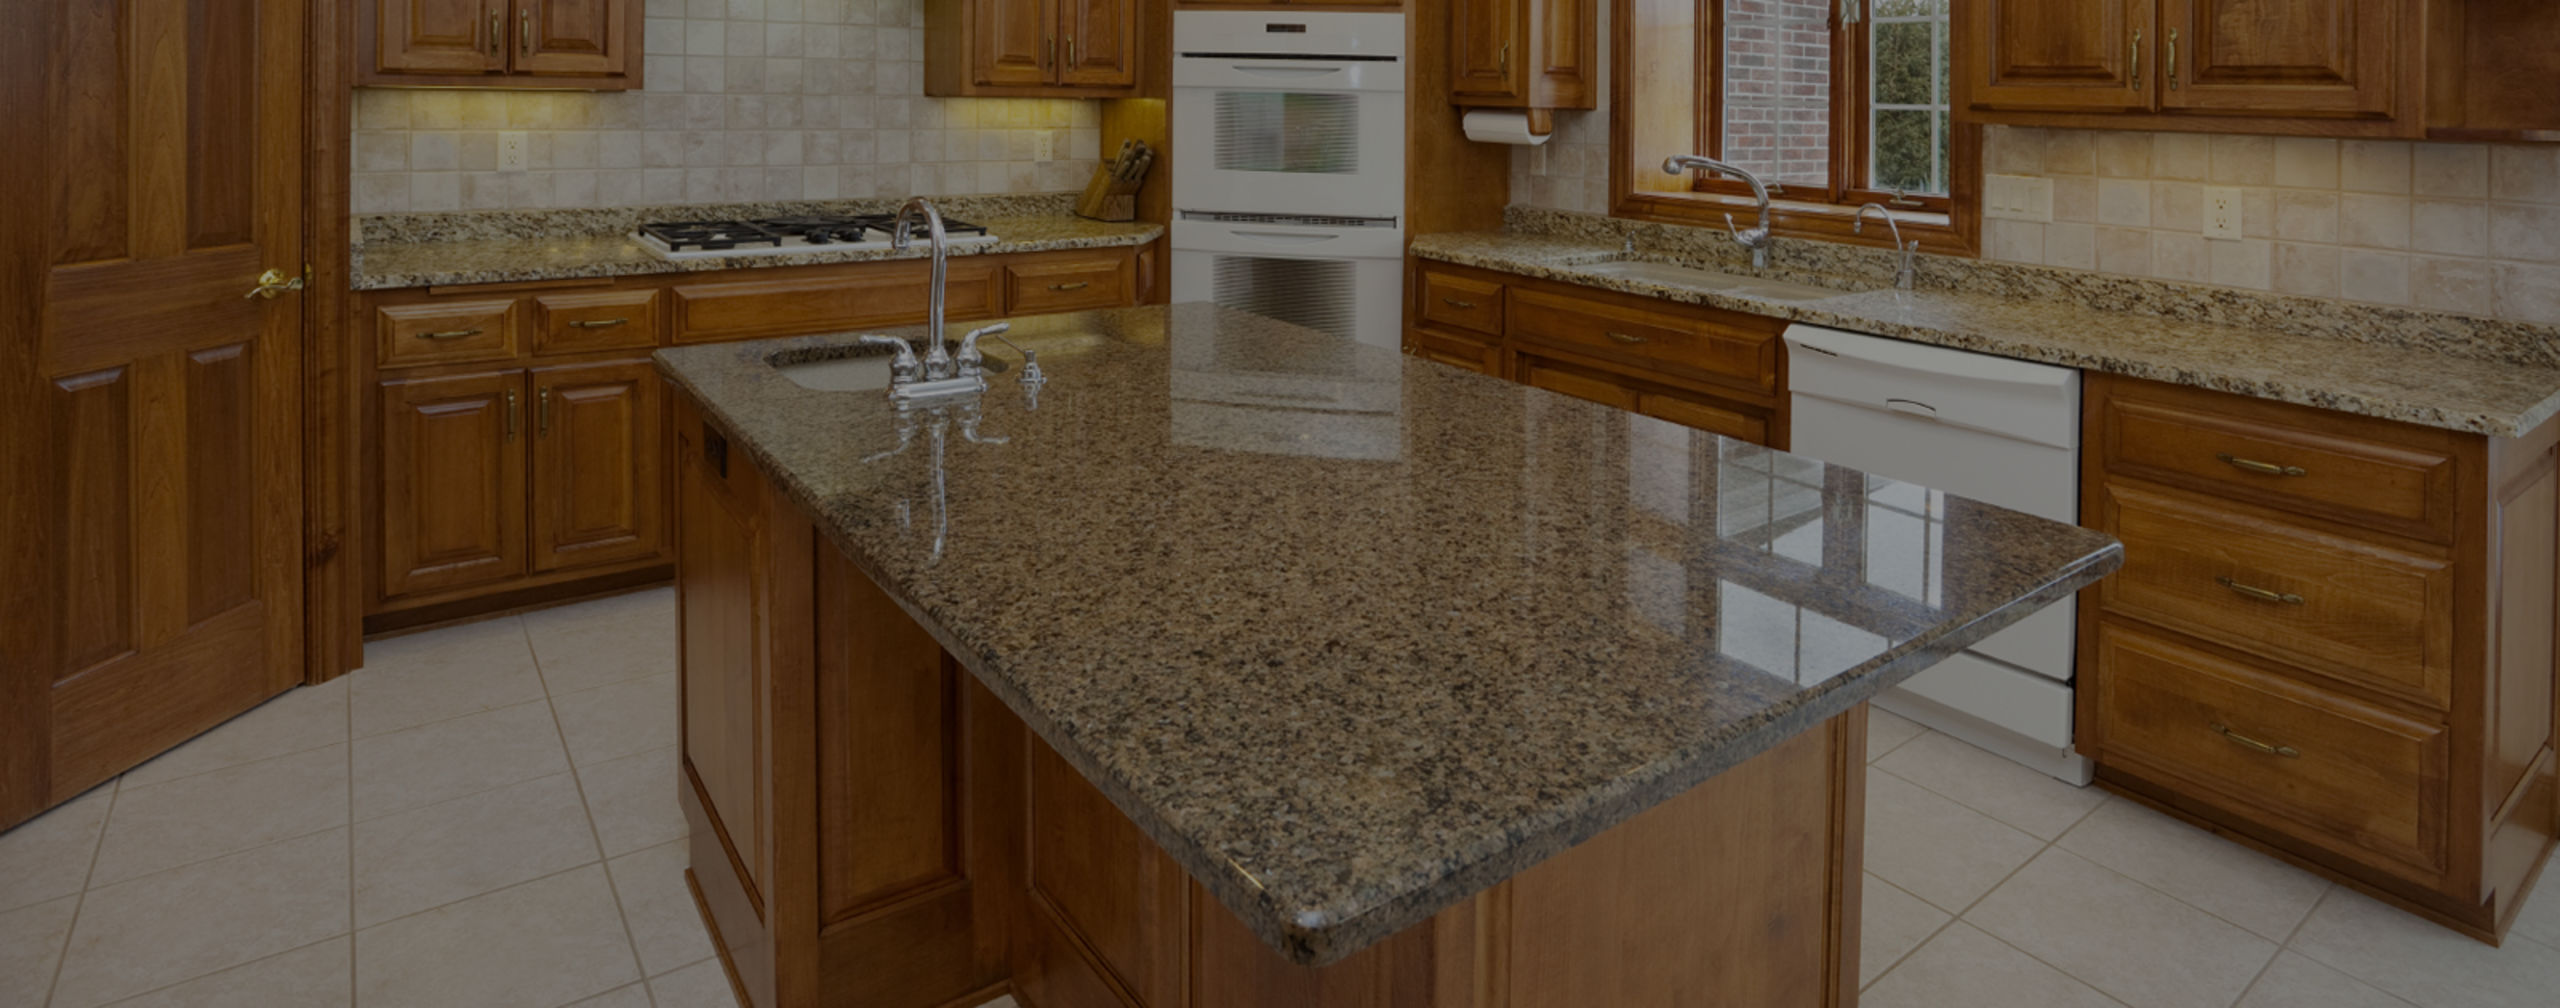 3 Tips to Keep Your Granite in Great Shape